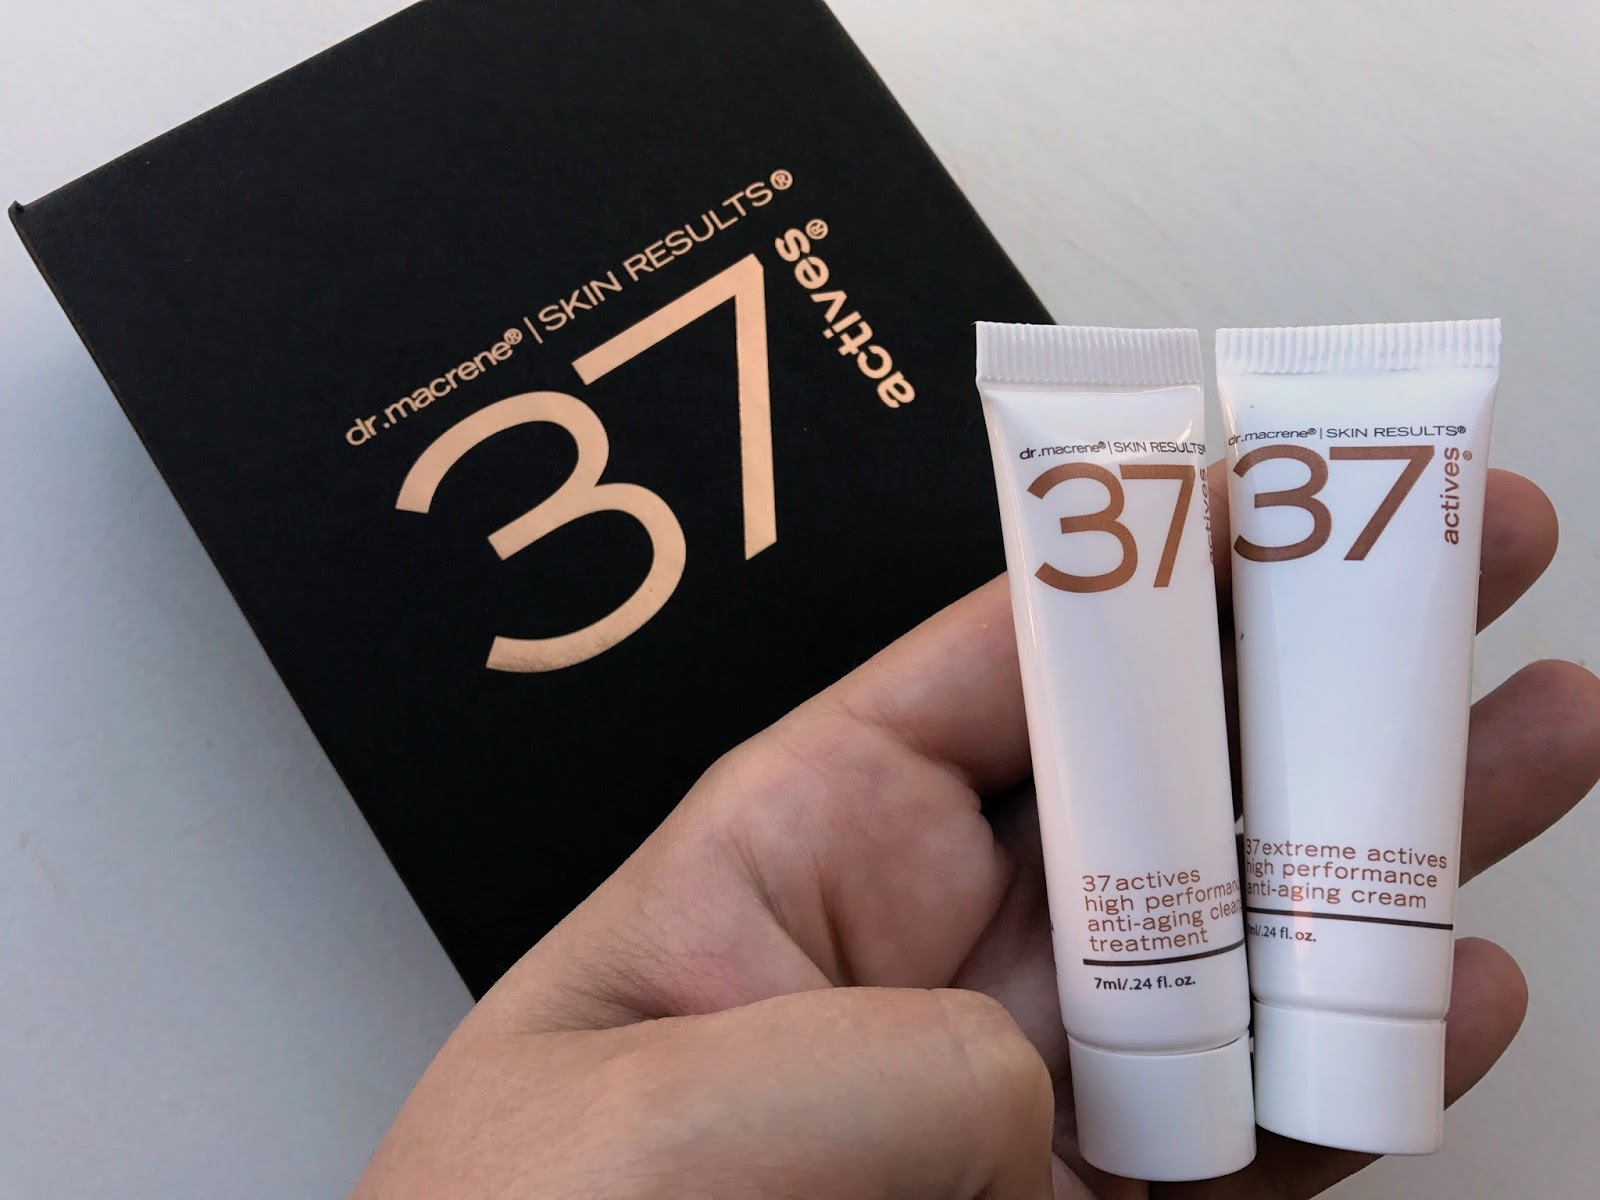 37 Activities Cleanser and Cream